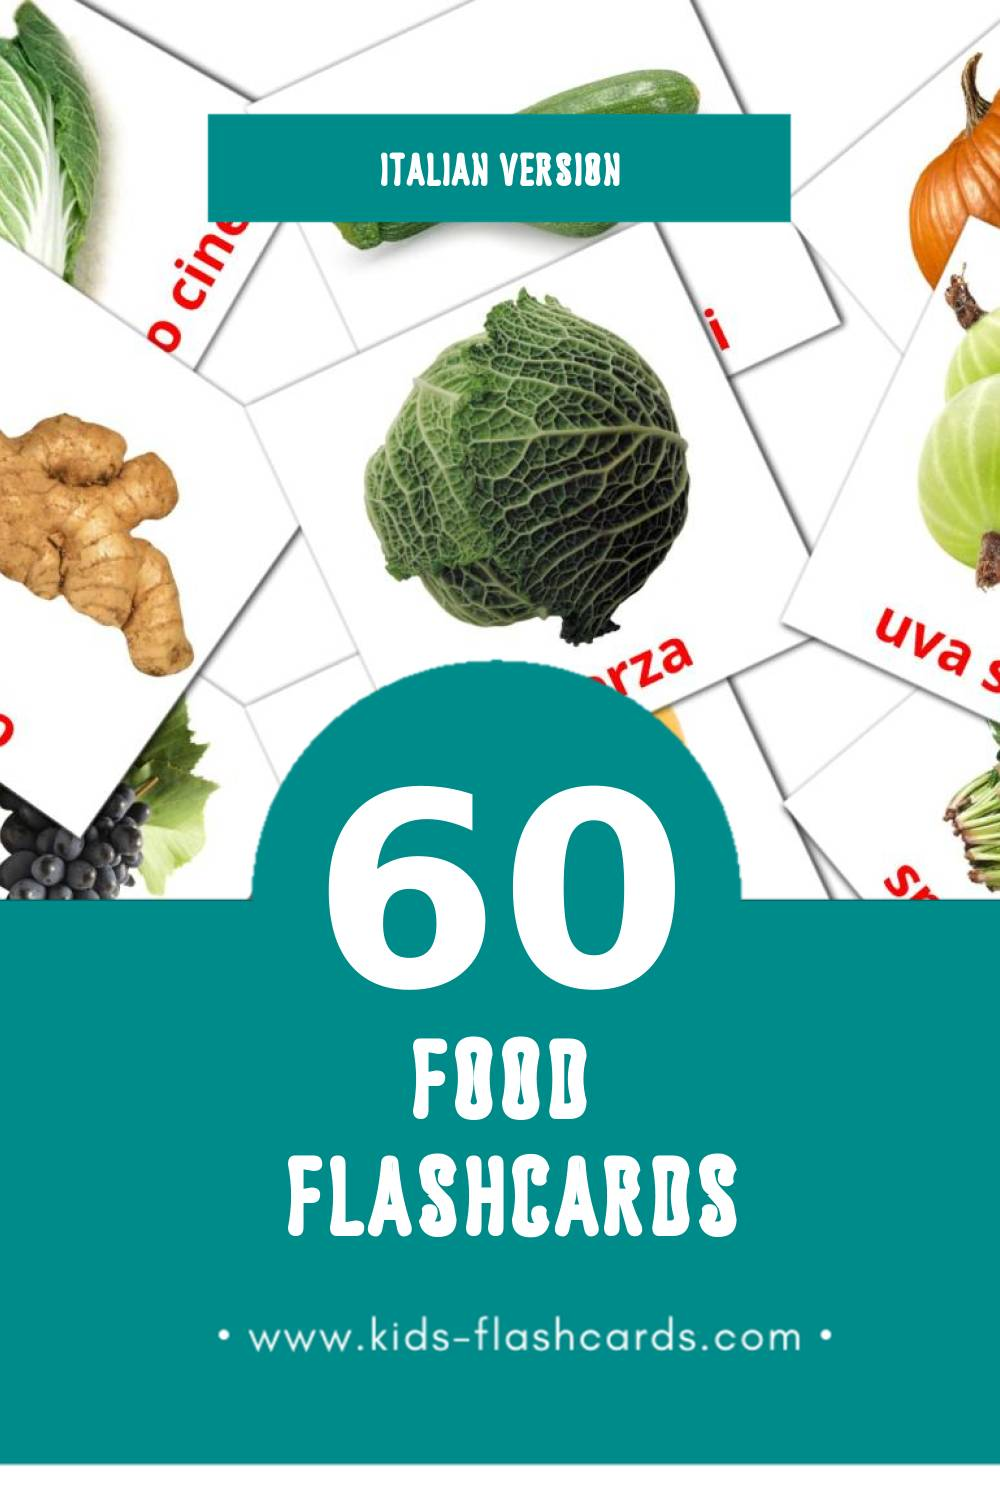 Visual Сibo Flashcards for Toddlers (60 cards in Italian)